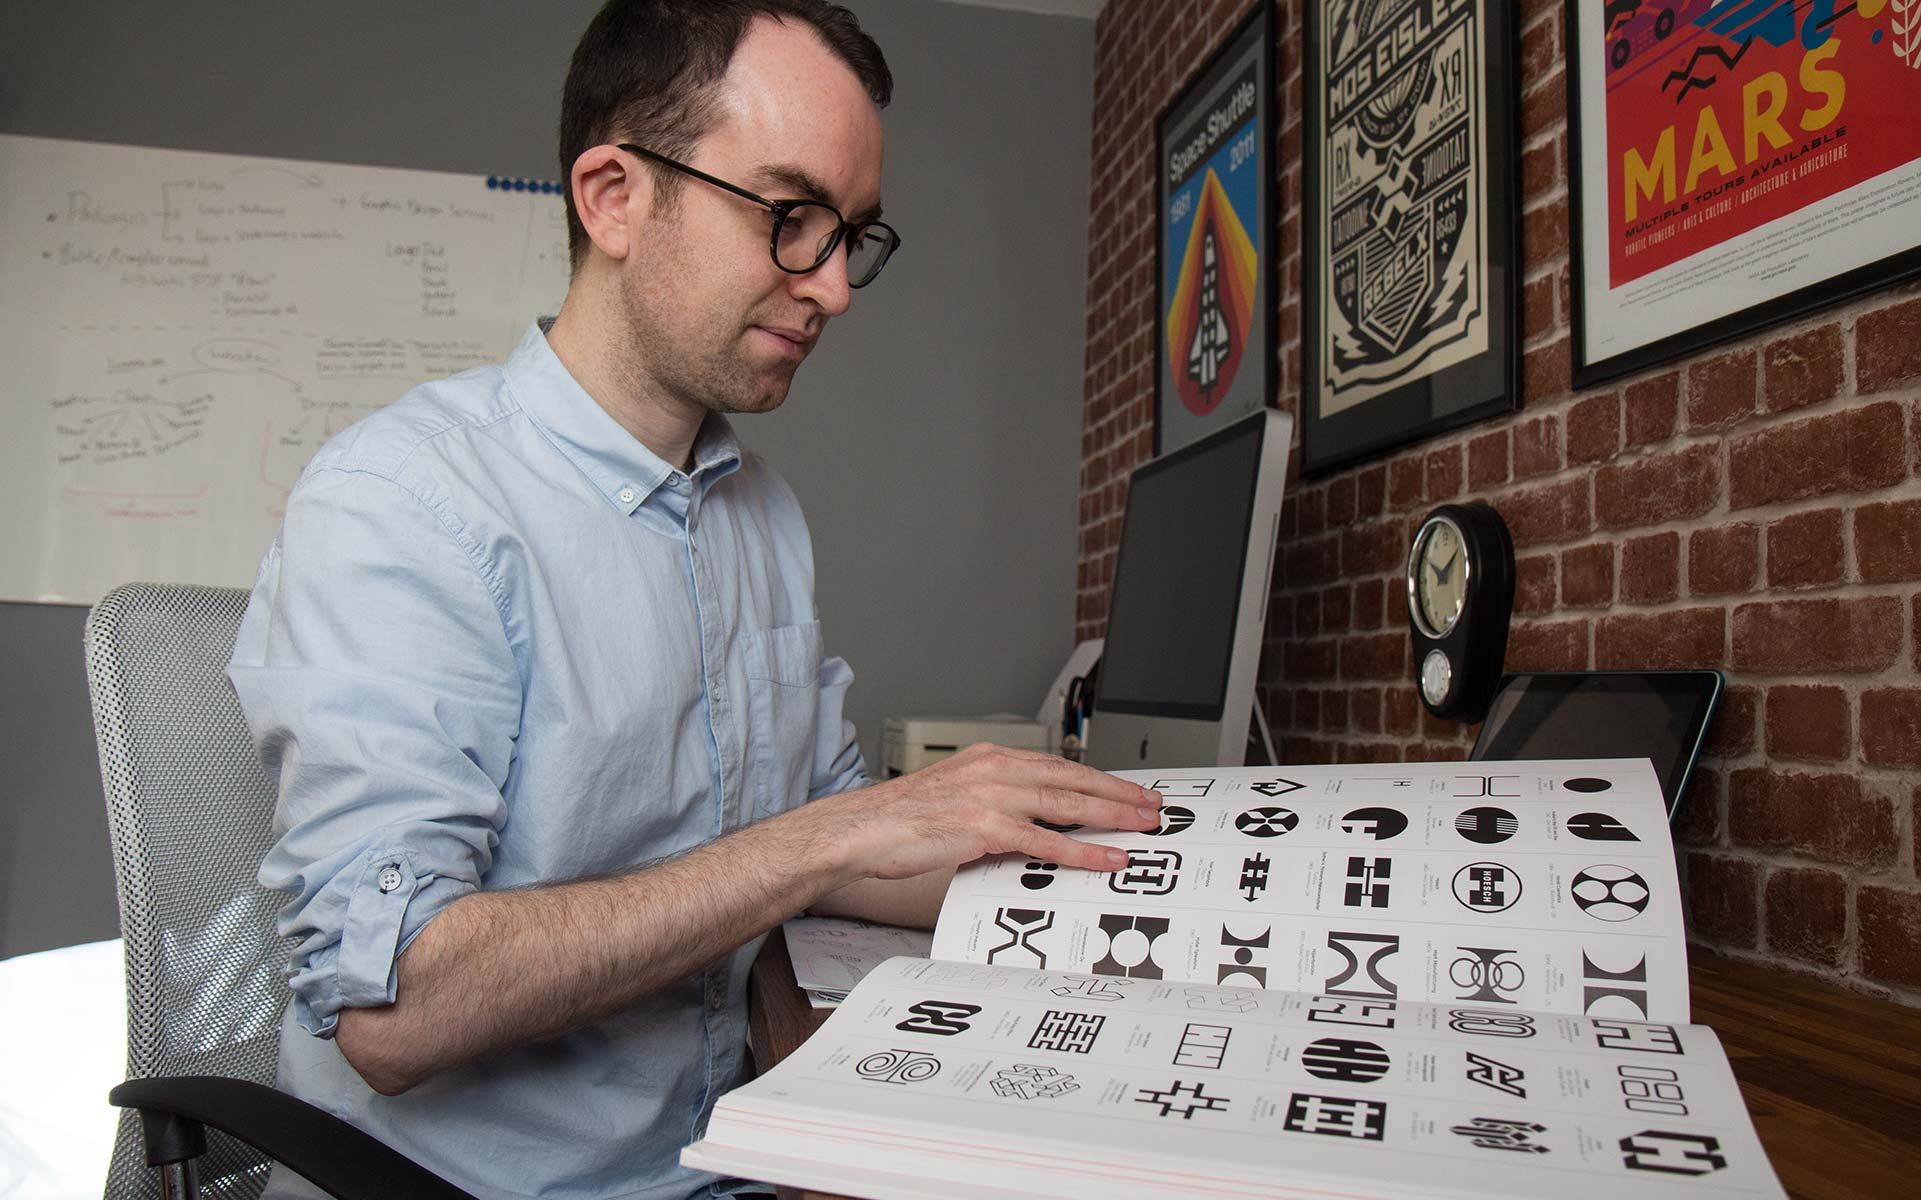 Ian Paget looking at identity design inspiration